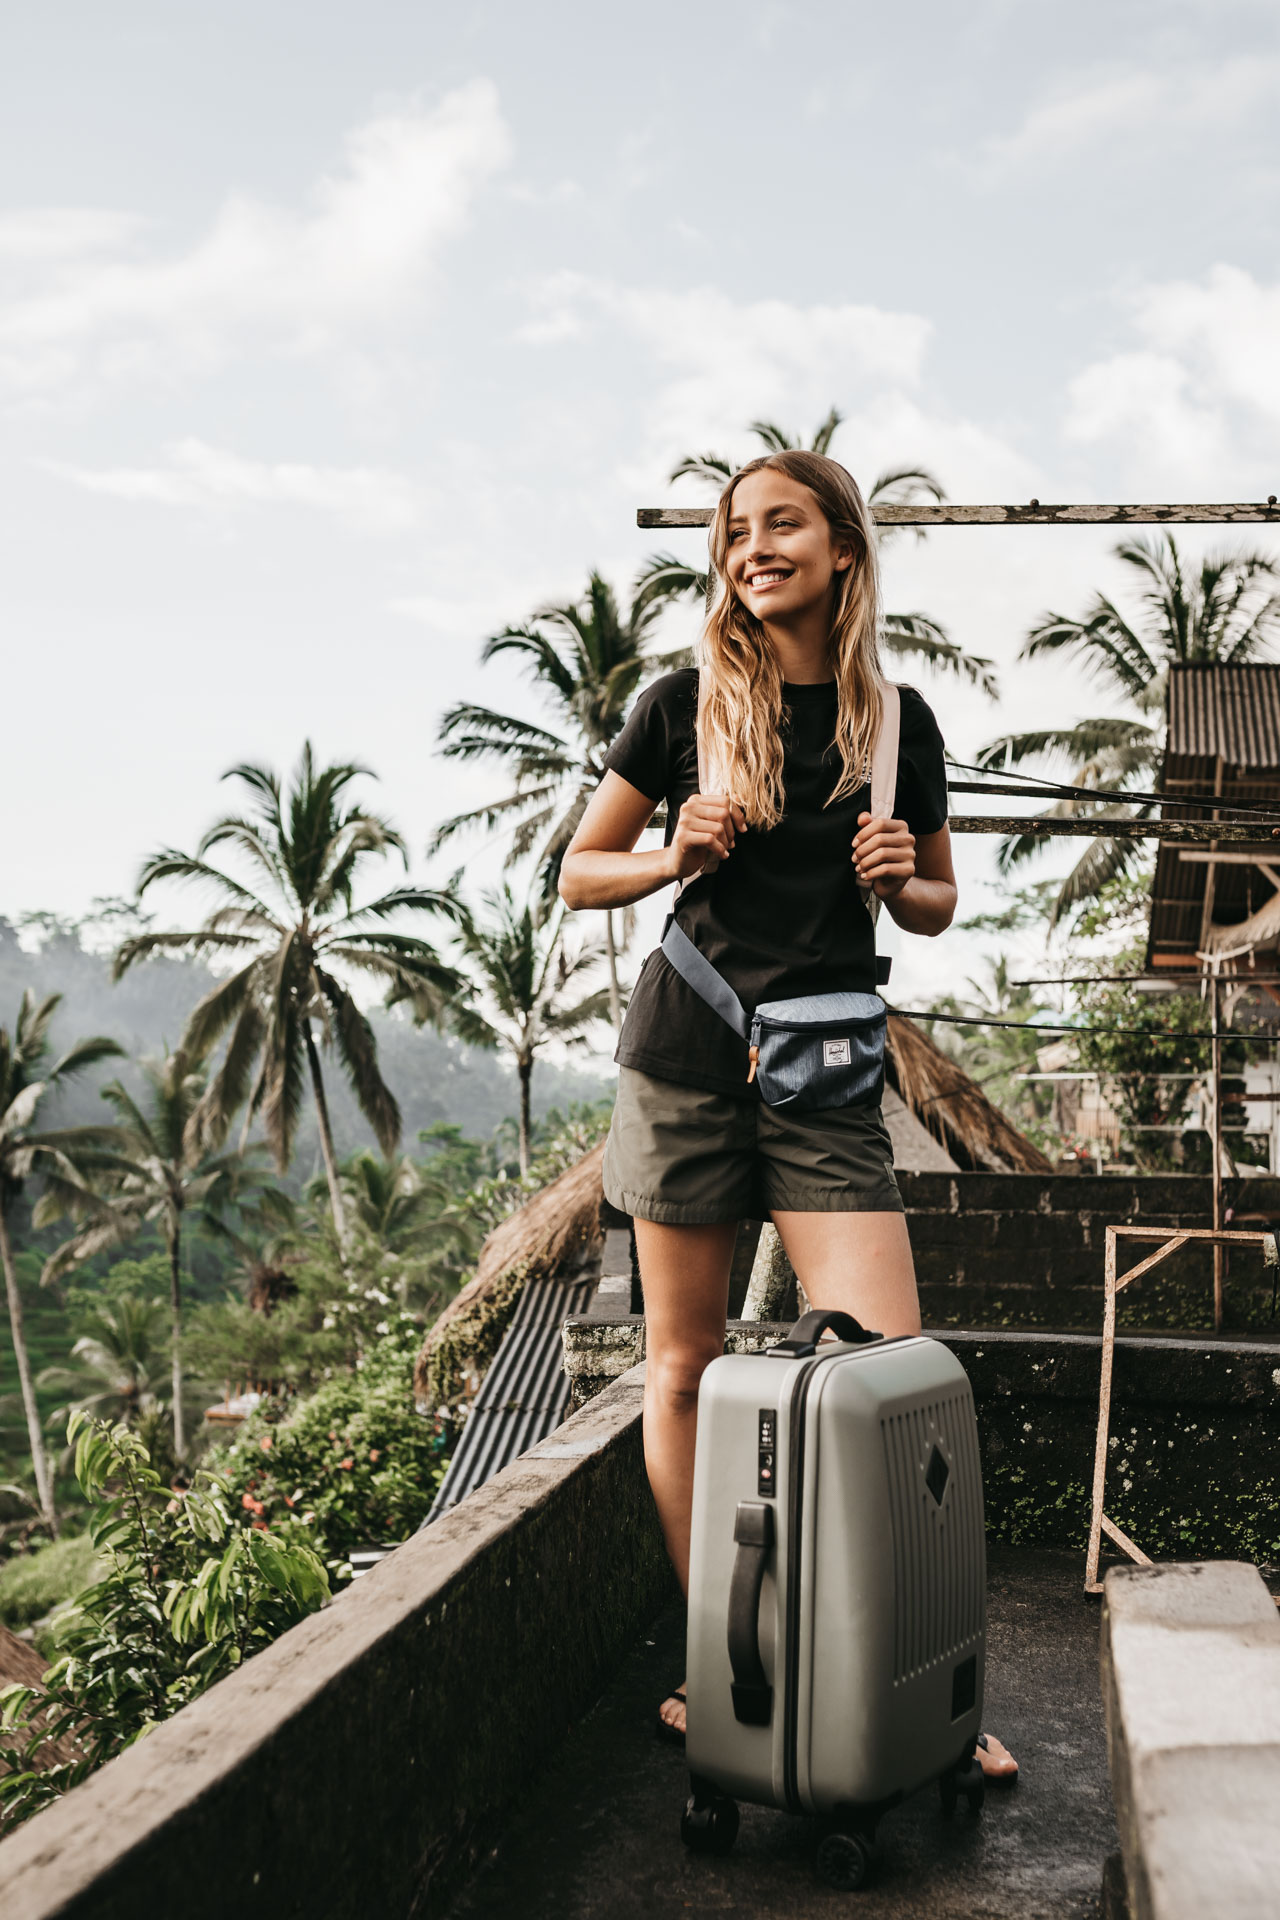 keira-mason-nordic-retreats-herschels-supply-ubud.jpg